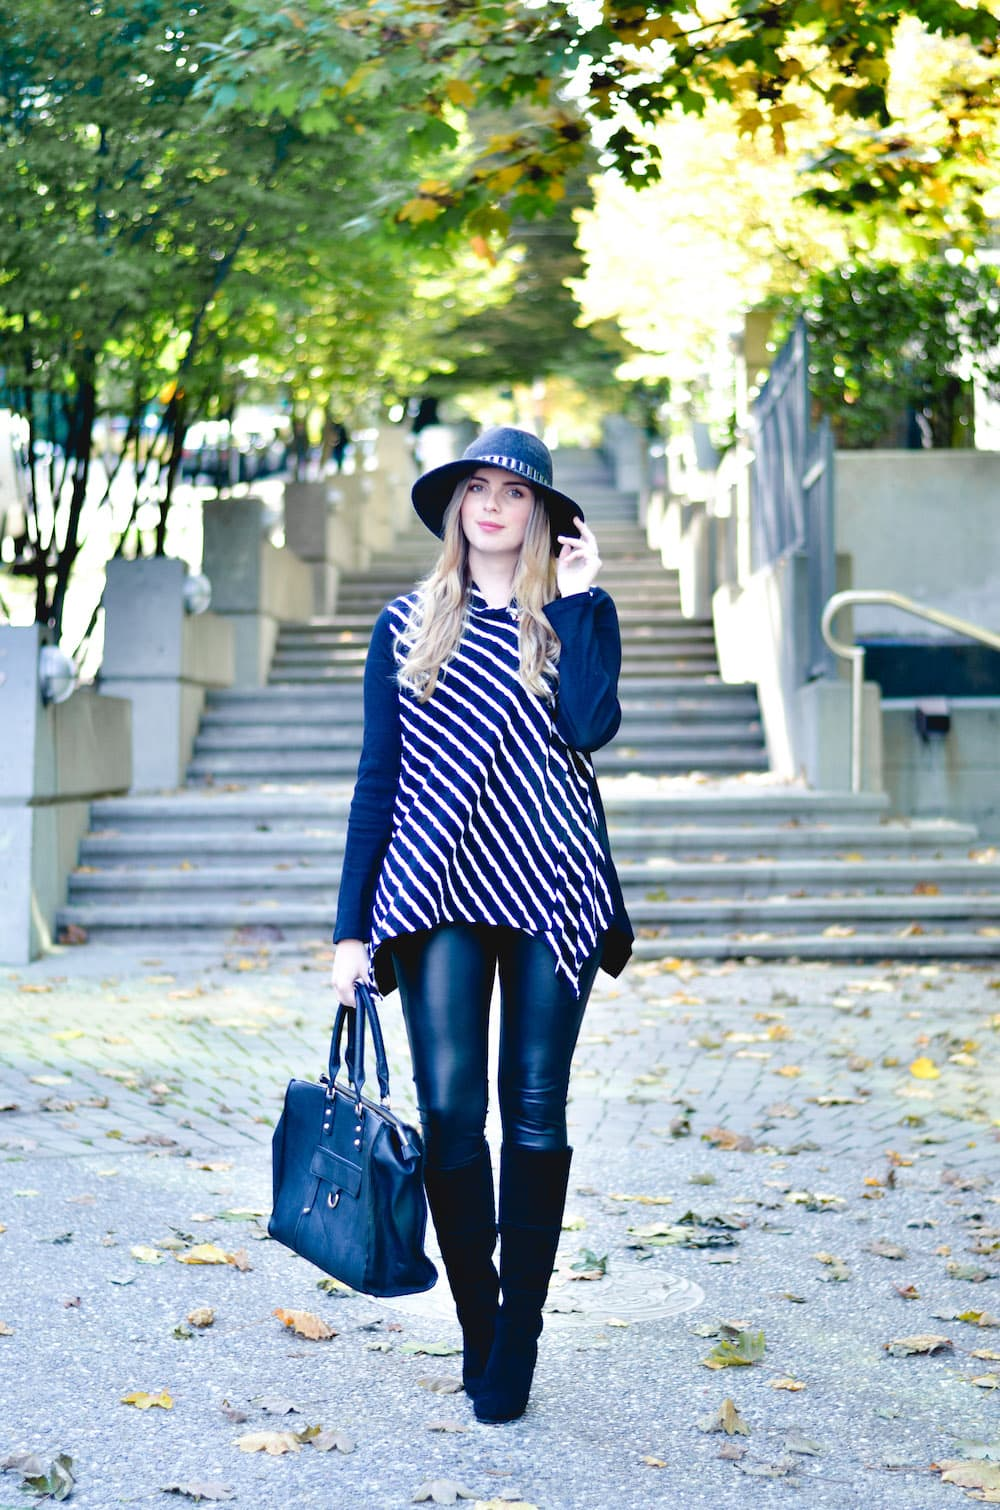 vancouver style blog, vancouver fashion blog,vancouver blog, vancouver fashion bloggers, best vancouver fashion blog, fashion blog, vancouver style blogger, vancouver style bloggers, vancouver lifestyle blog, vancouver travel blog, canadian fashion blog, canadian style blog, canadian travel blog,popular fashion blog, popular style blog, bree aylwin, fall style, fall fashion, fall outfit ideas, fall outfit, fall trends, fall outfits